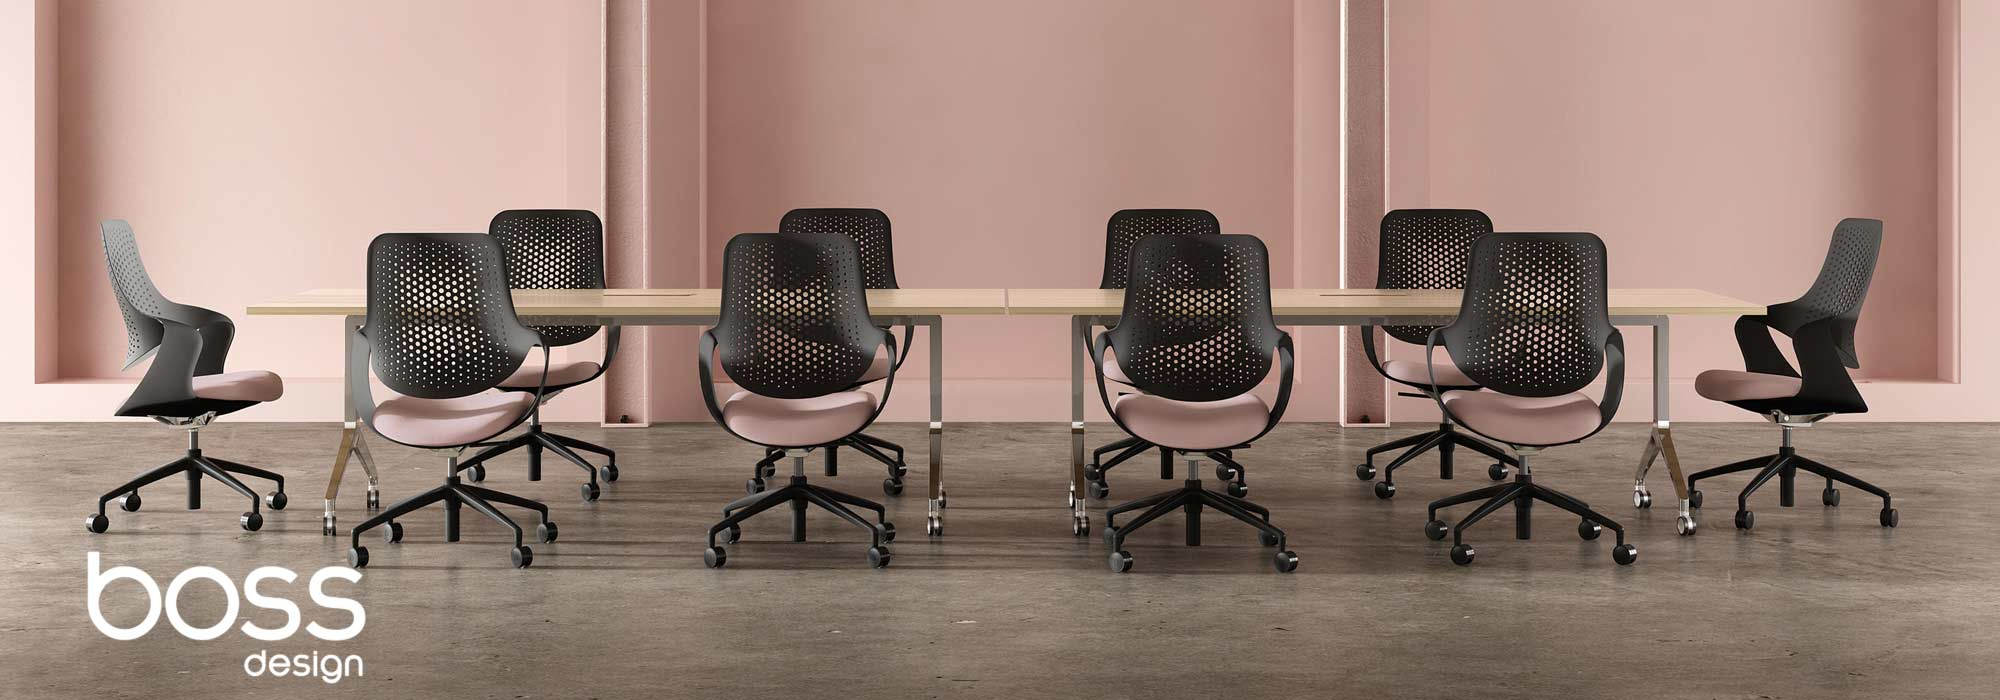 Boss Design Coza Chairs